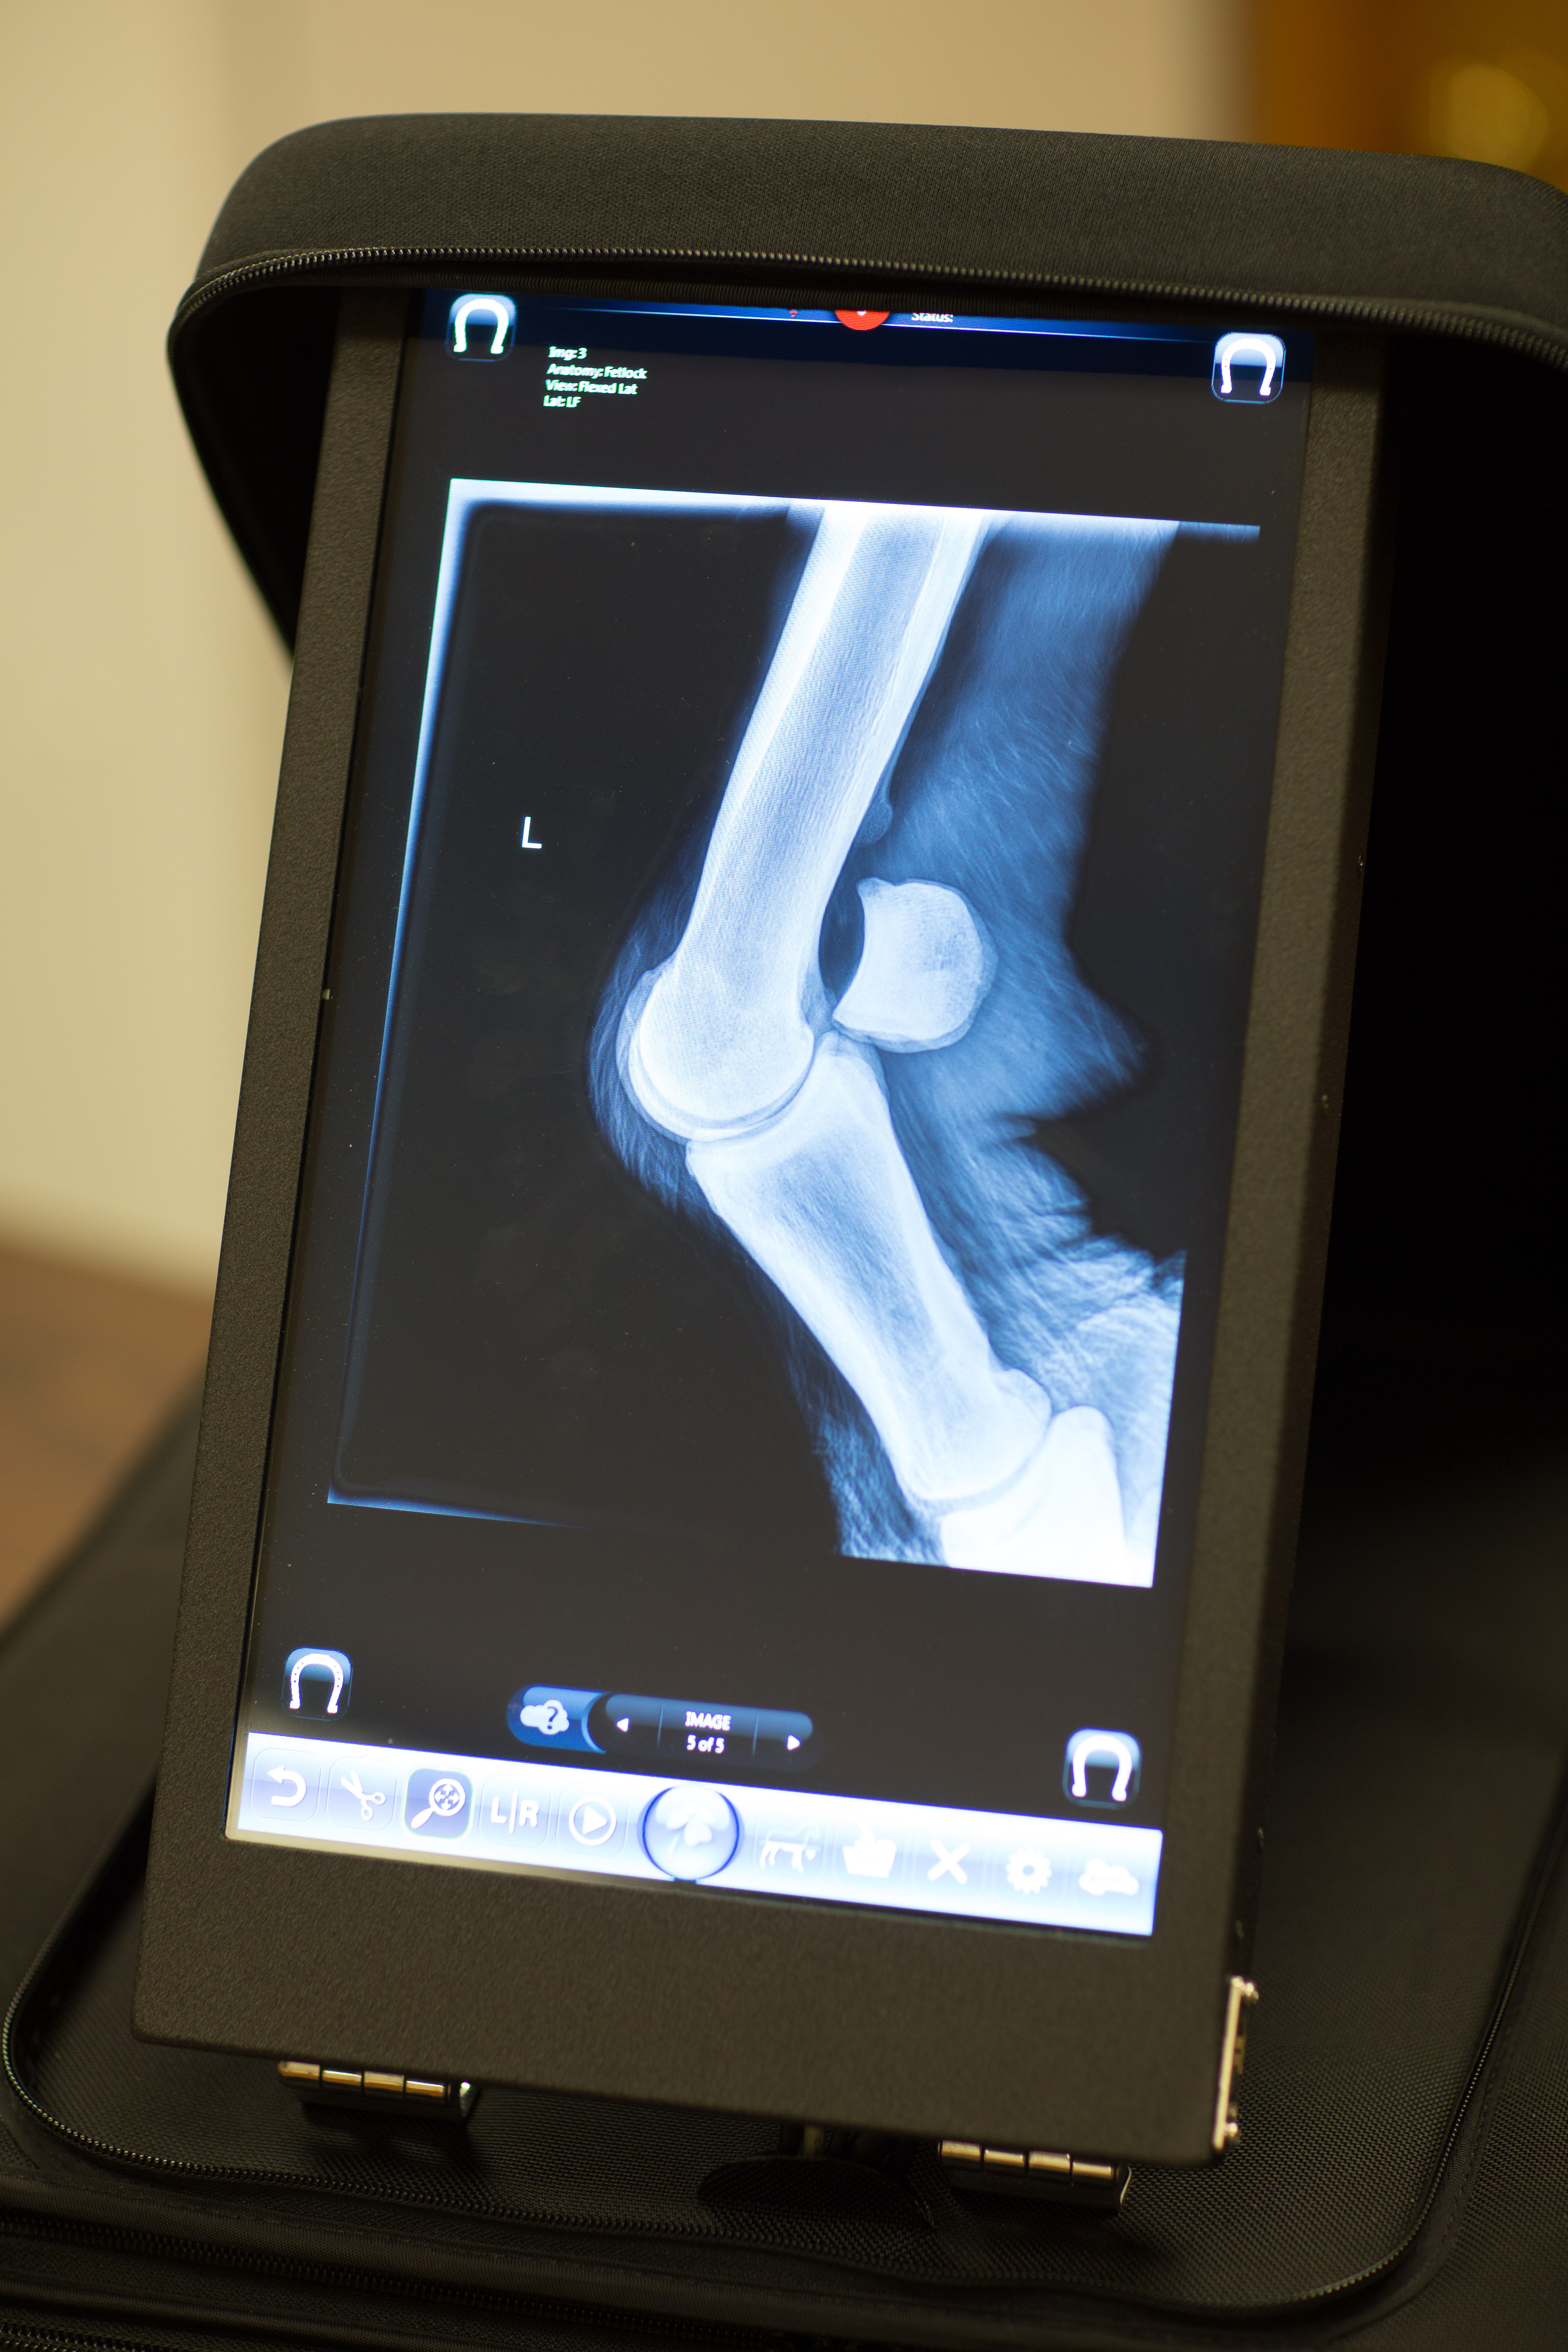 Our Cuattro Digital Radiography